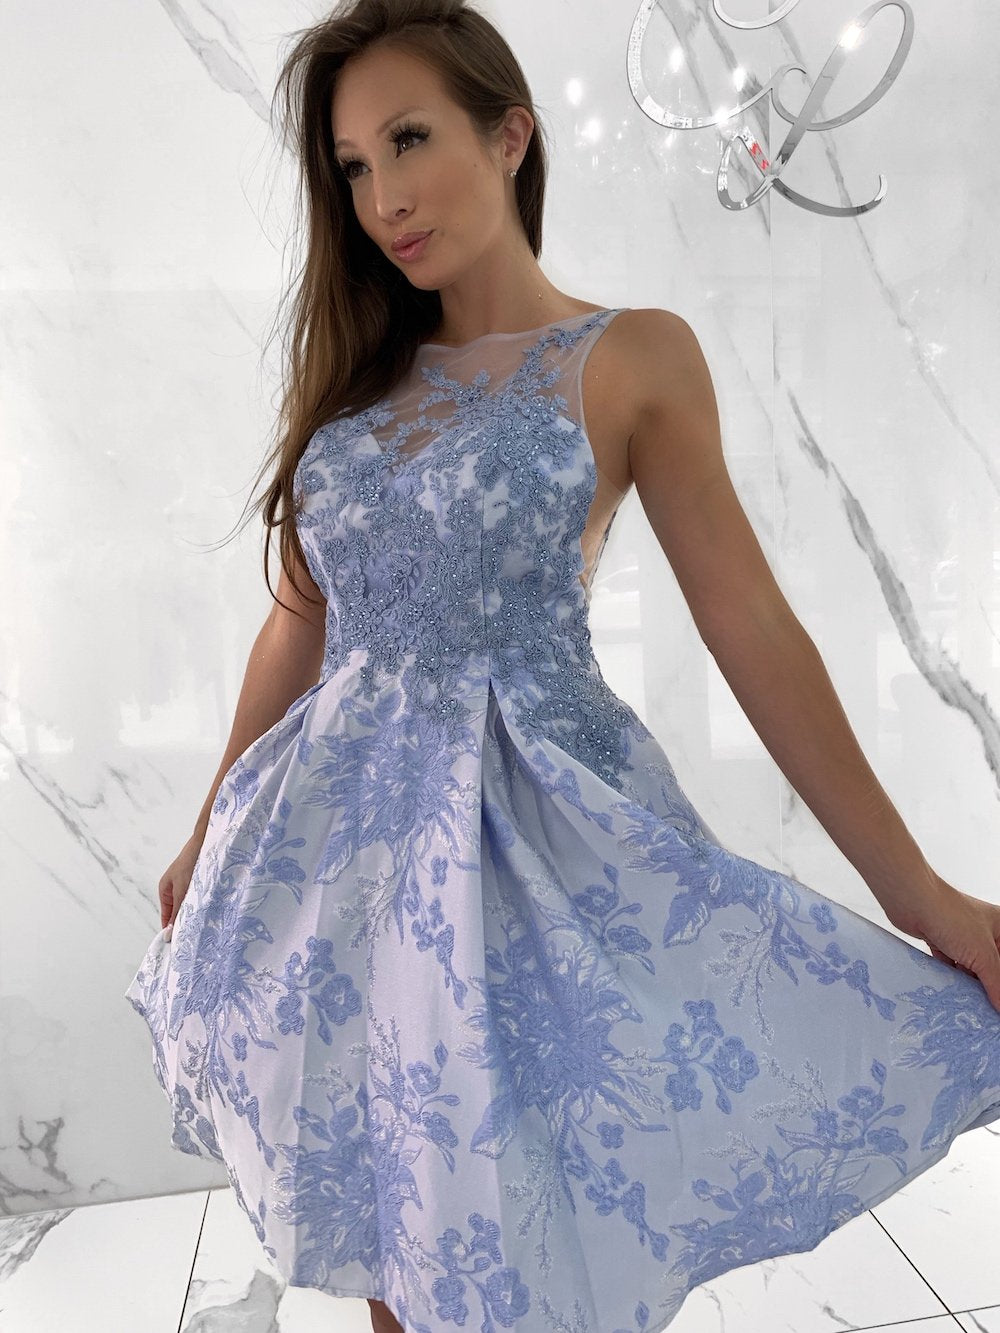 Vienna Dress, Women's Blue Dresses